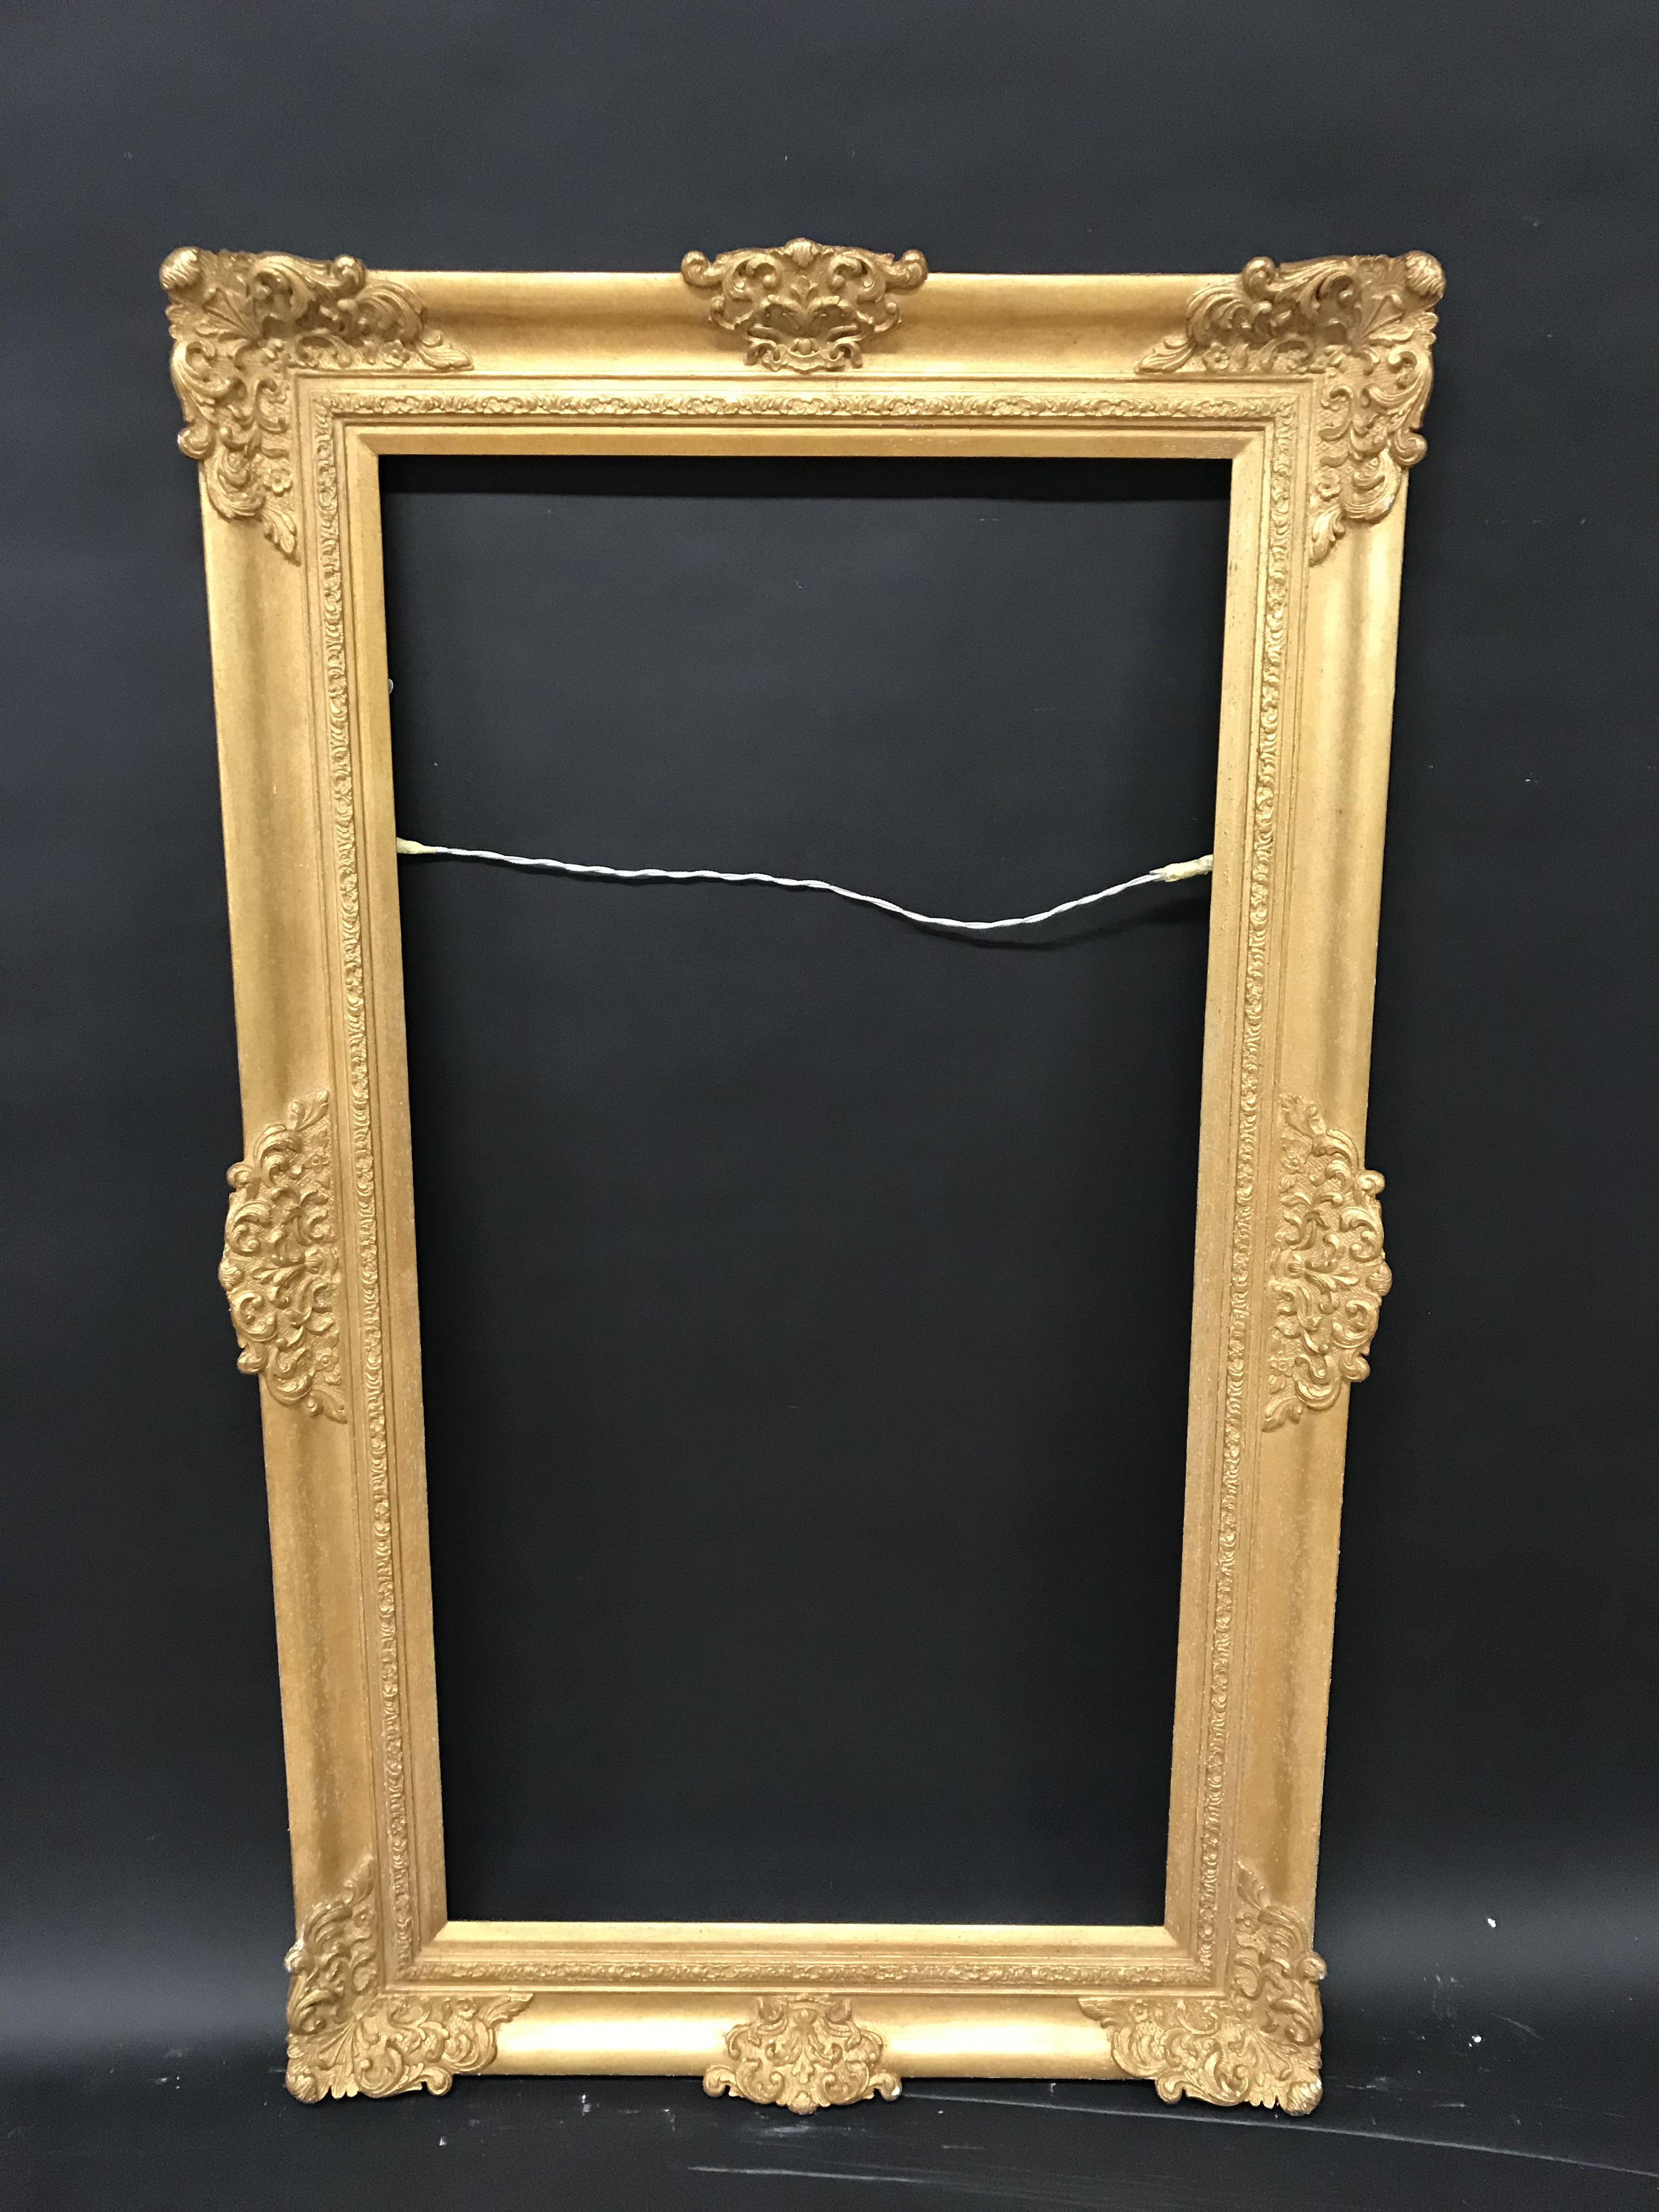 "Lot 13 - 20th Century English School. A Gilt Frame with Swept Centres and Corners, 42"" x 22"" (rebate)."